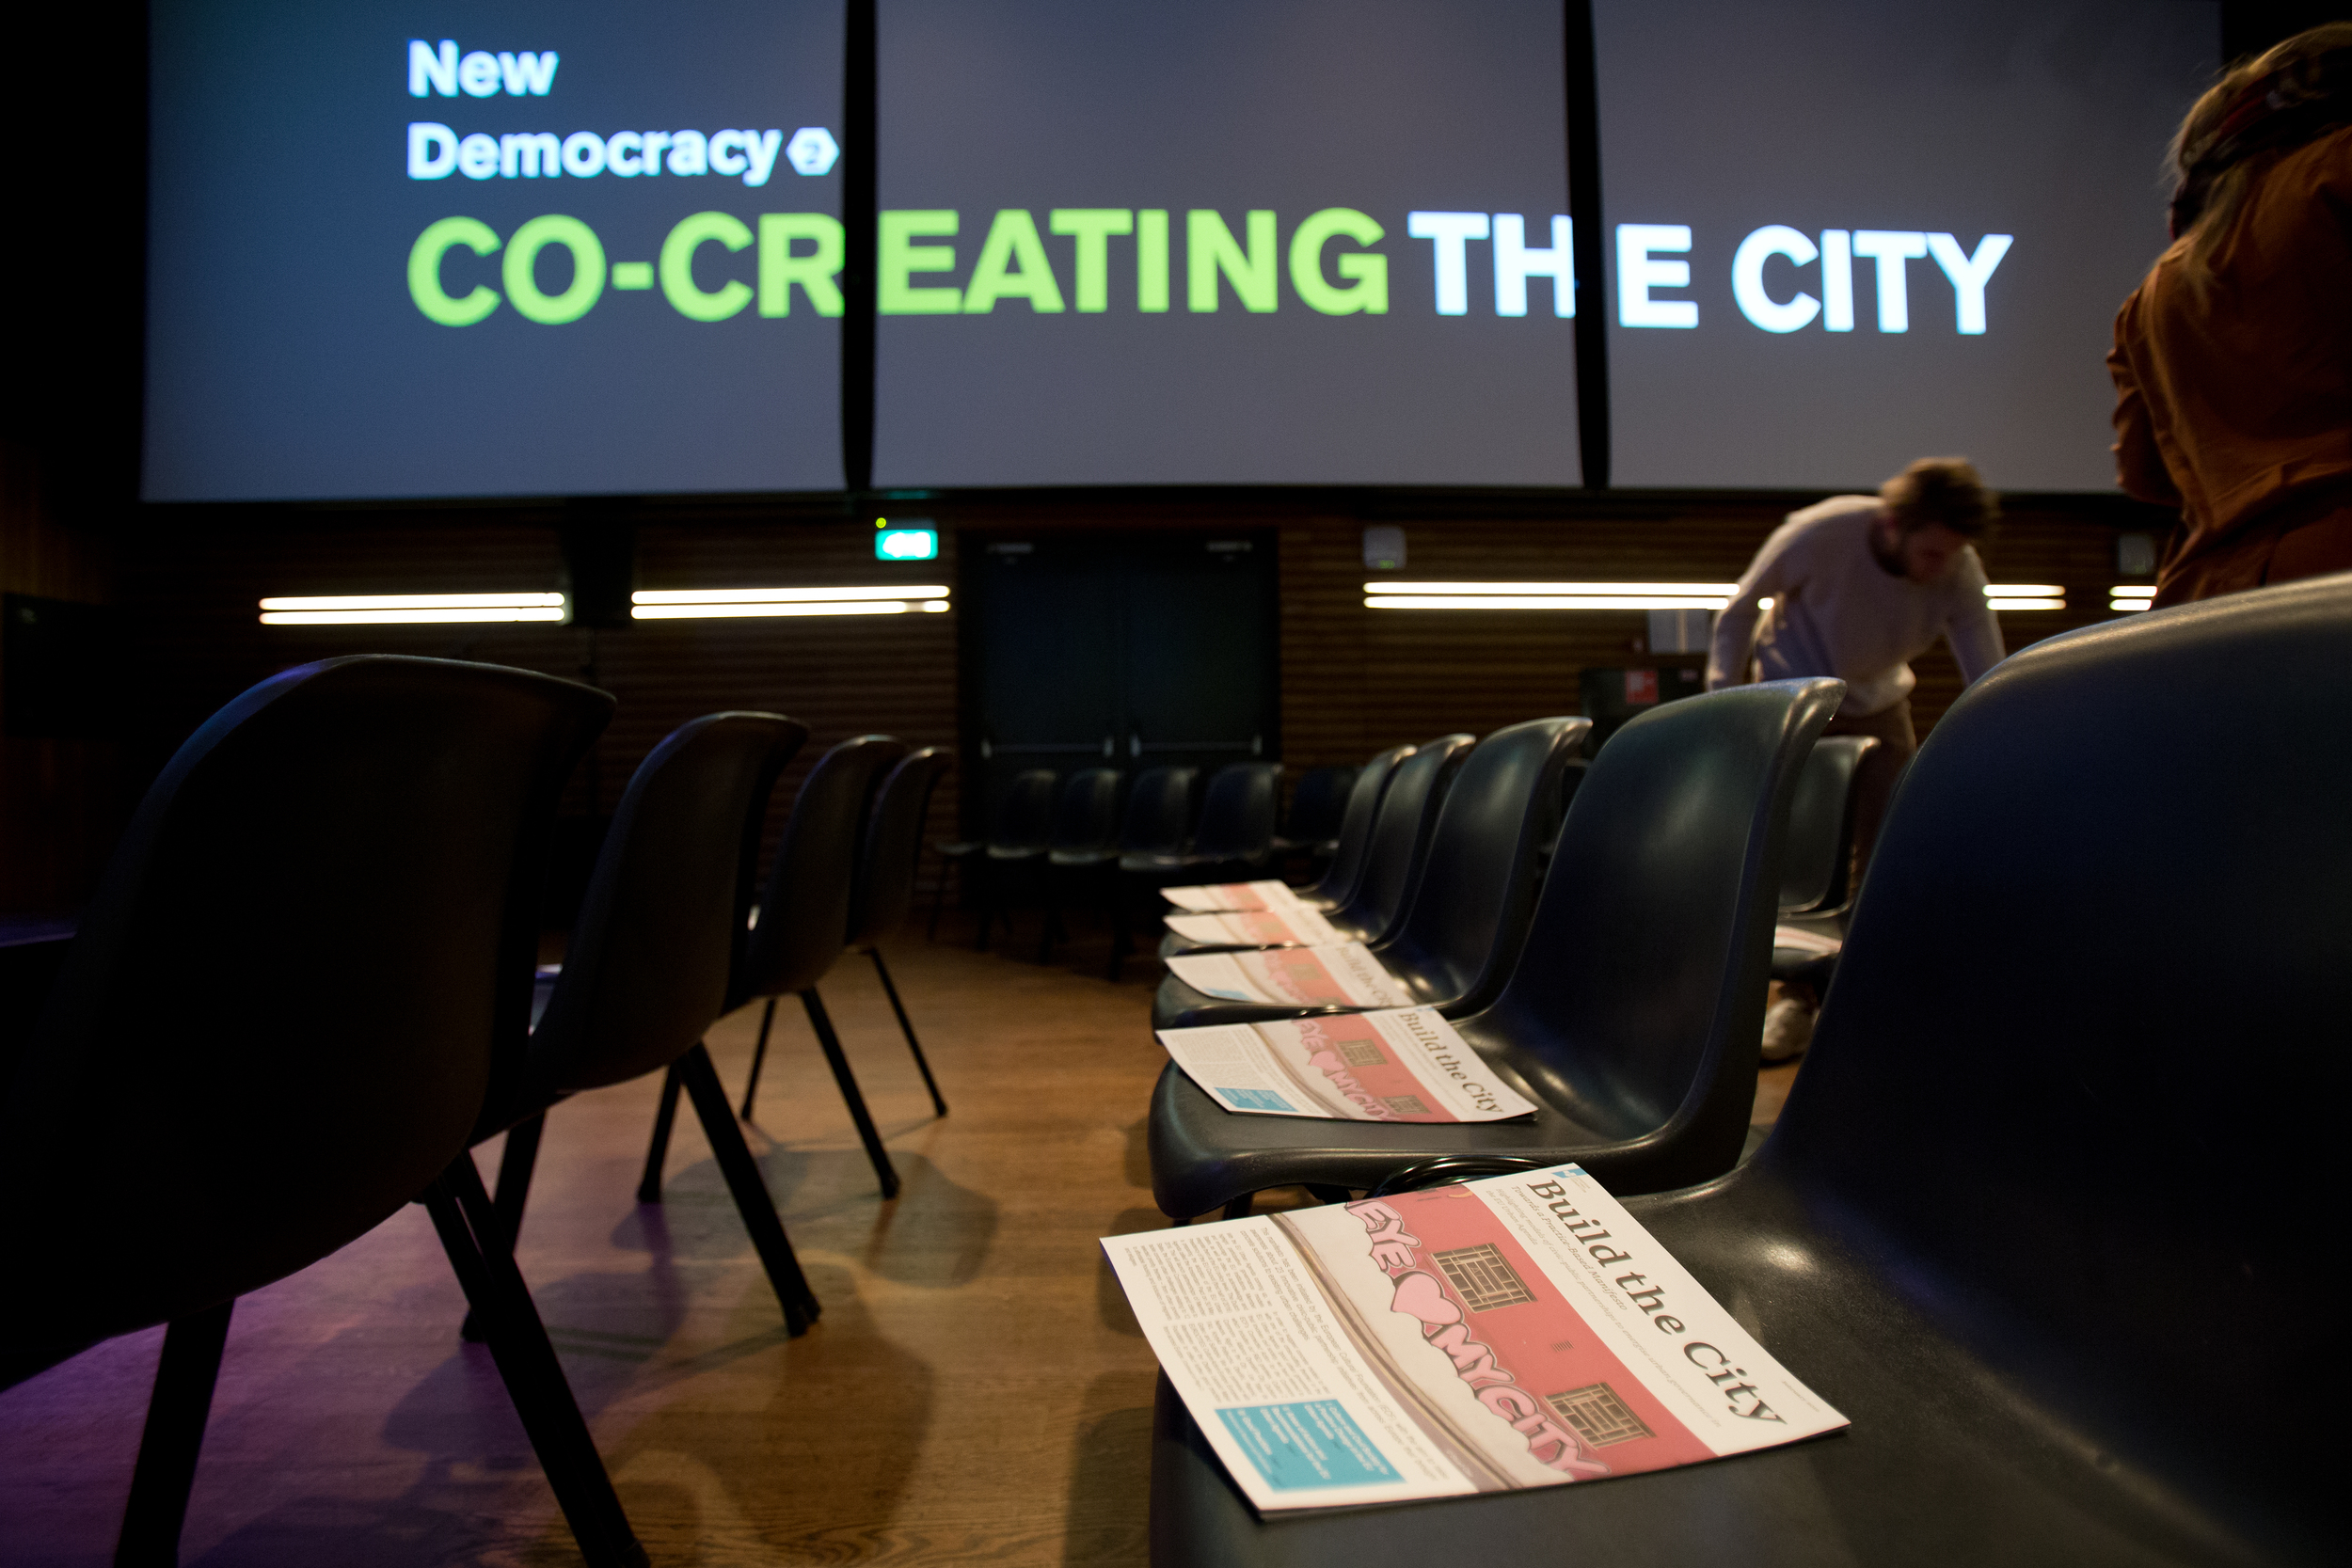 The Build the City Manifesto launched at our Co-creating the City event on 25/02.Photo by Maarten van Haaff.